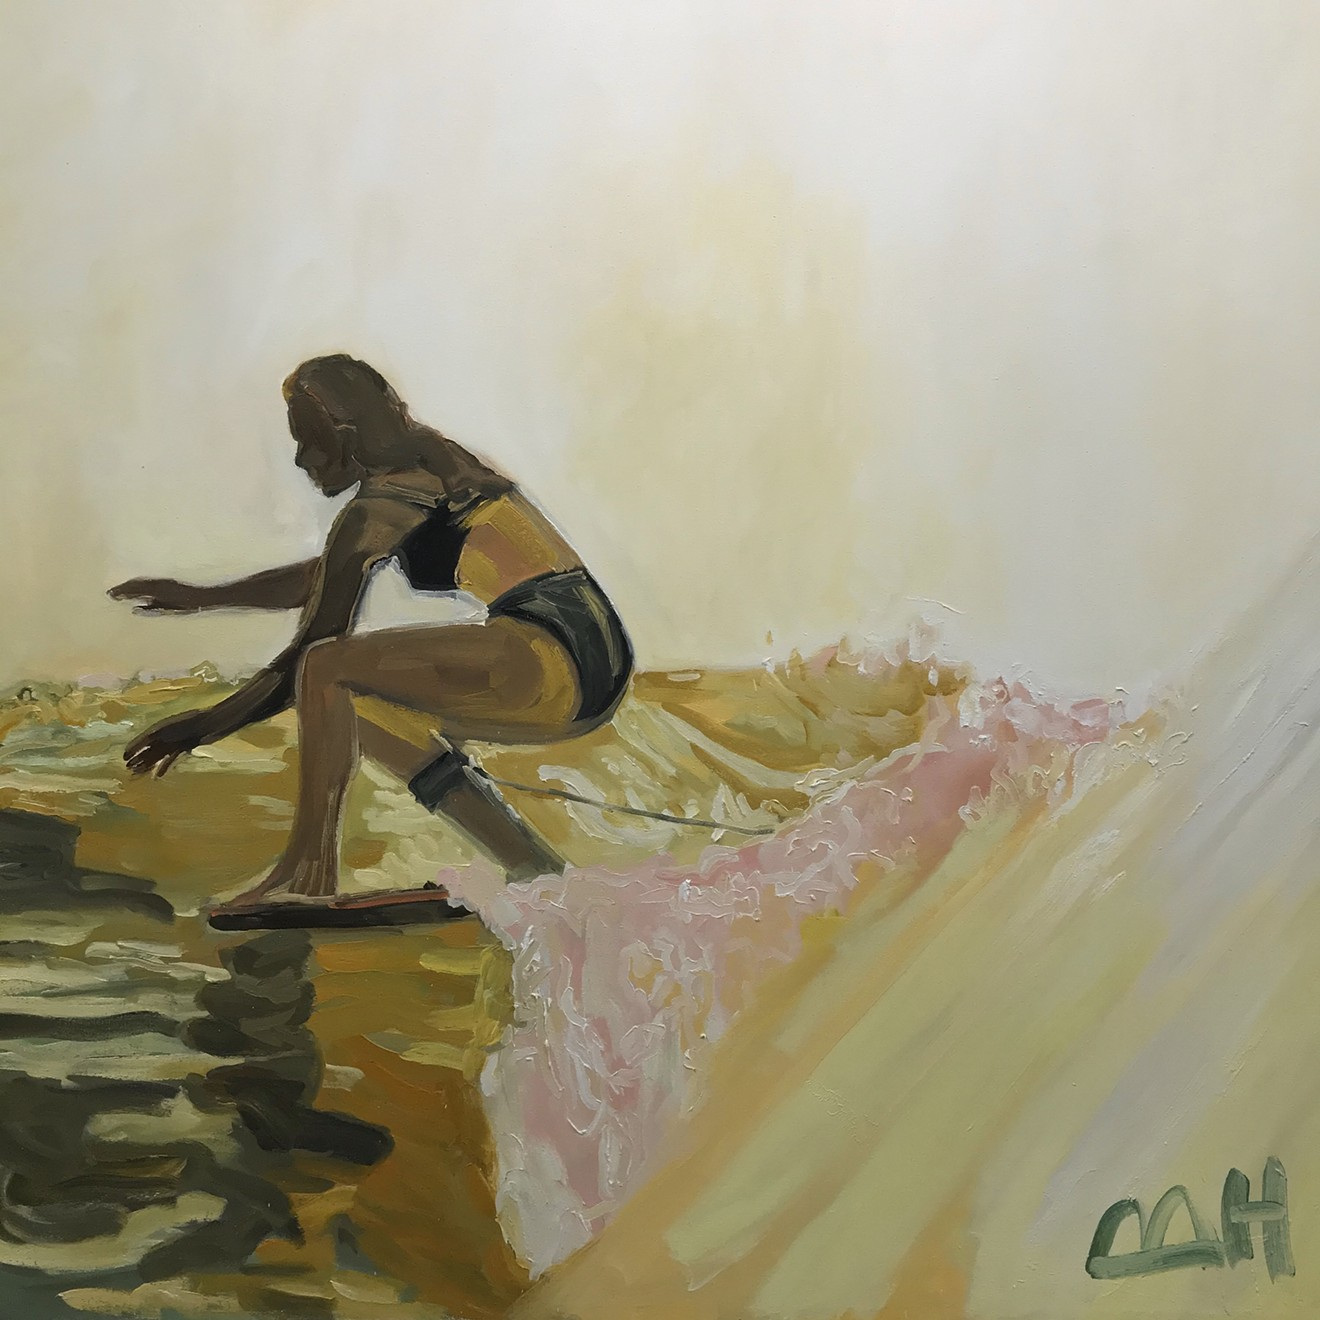 Painting by Maggie Hayes, 4ft x 4ft oil on canvas.